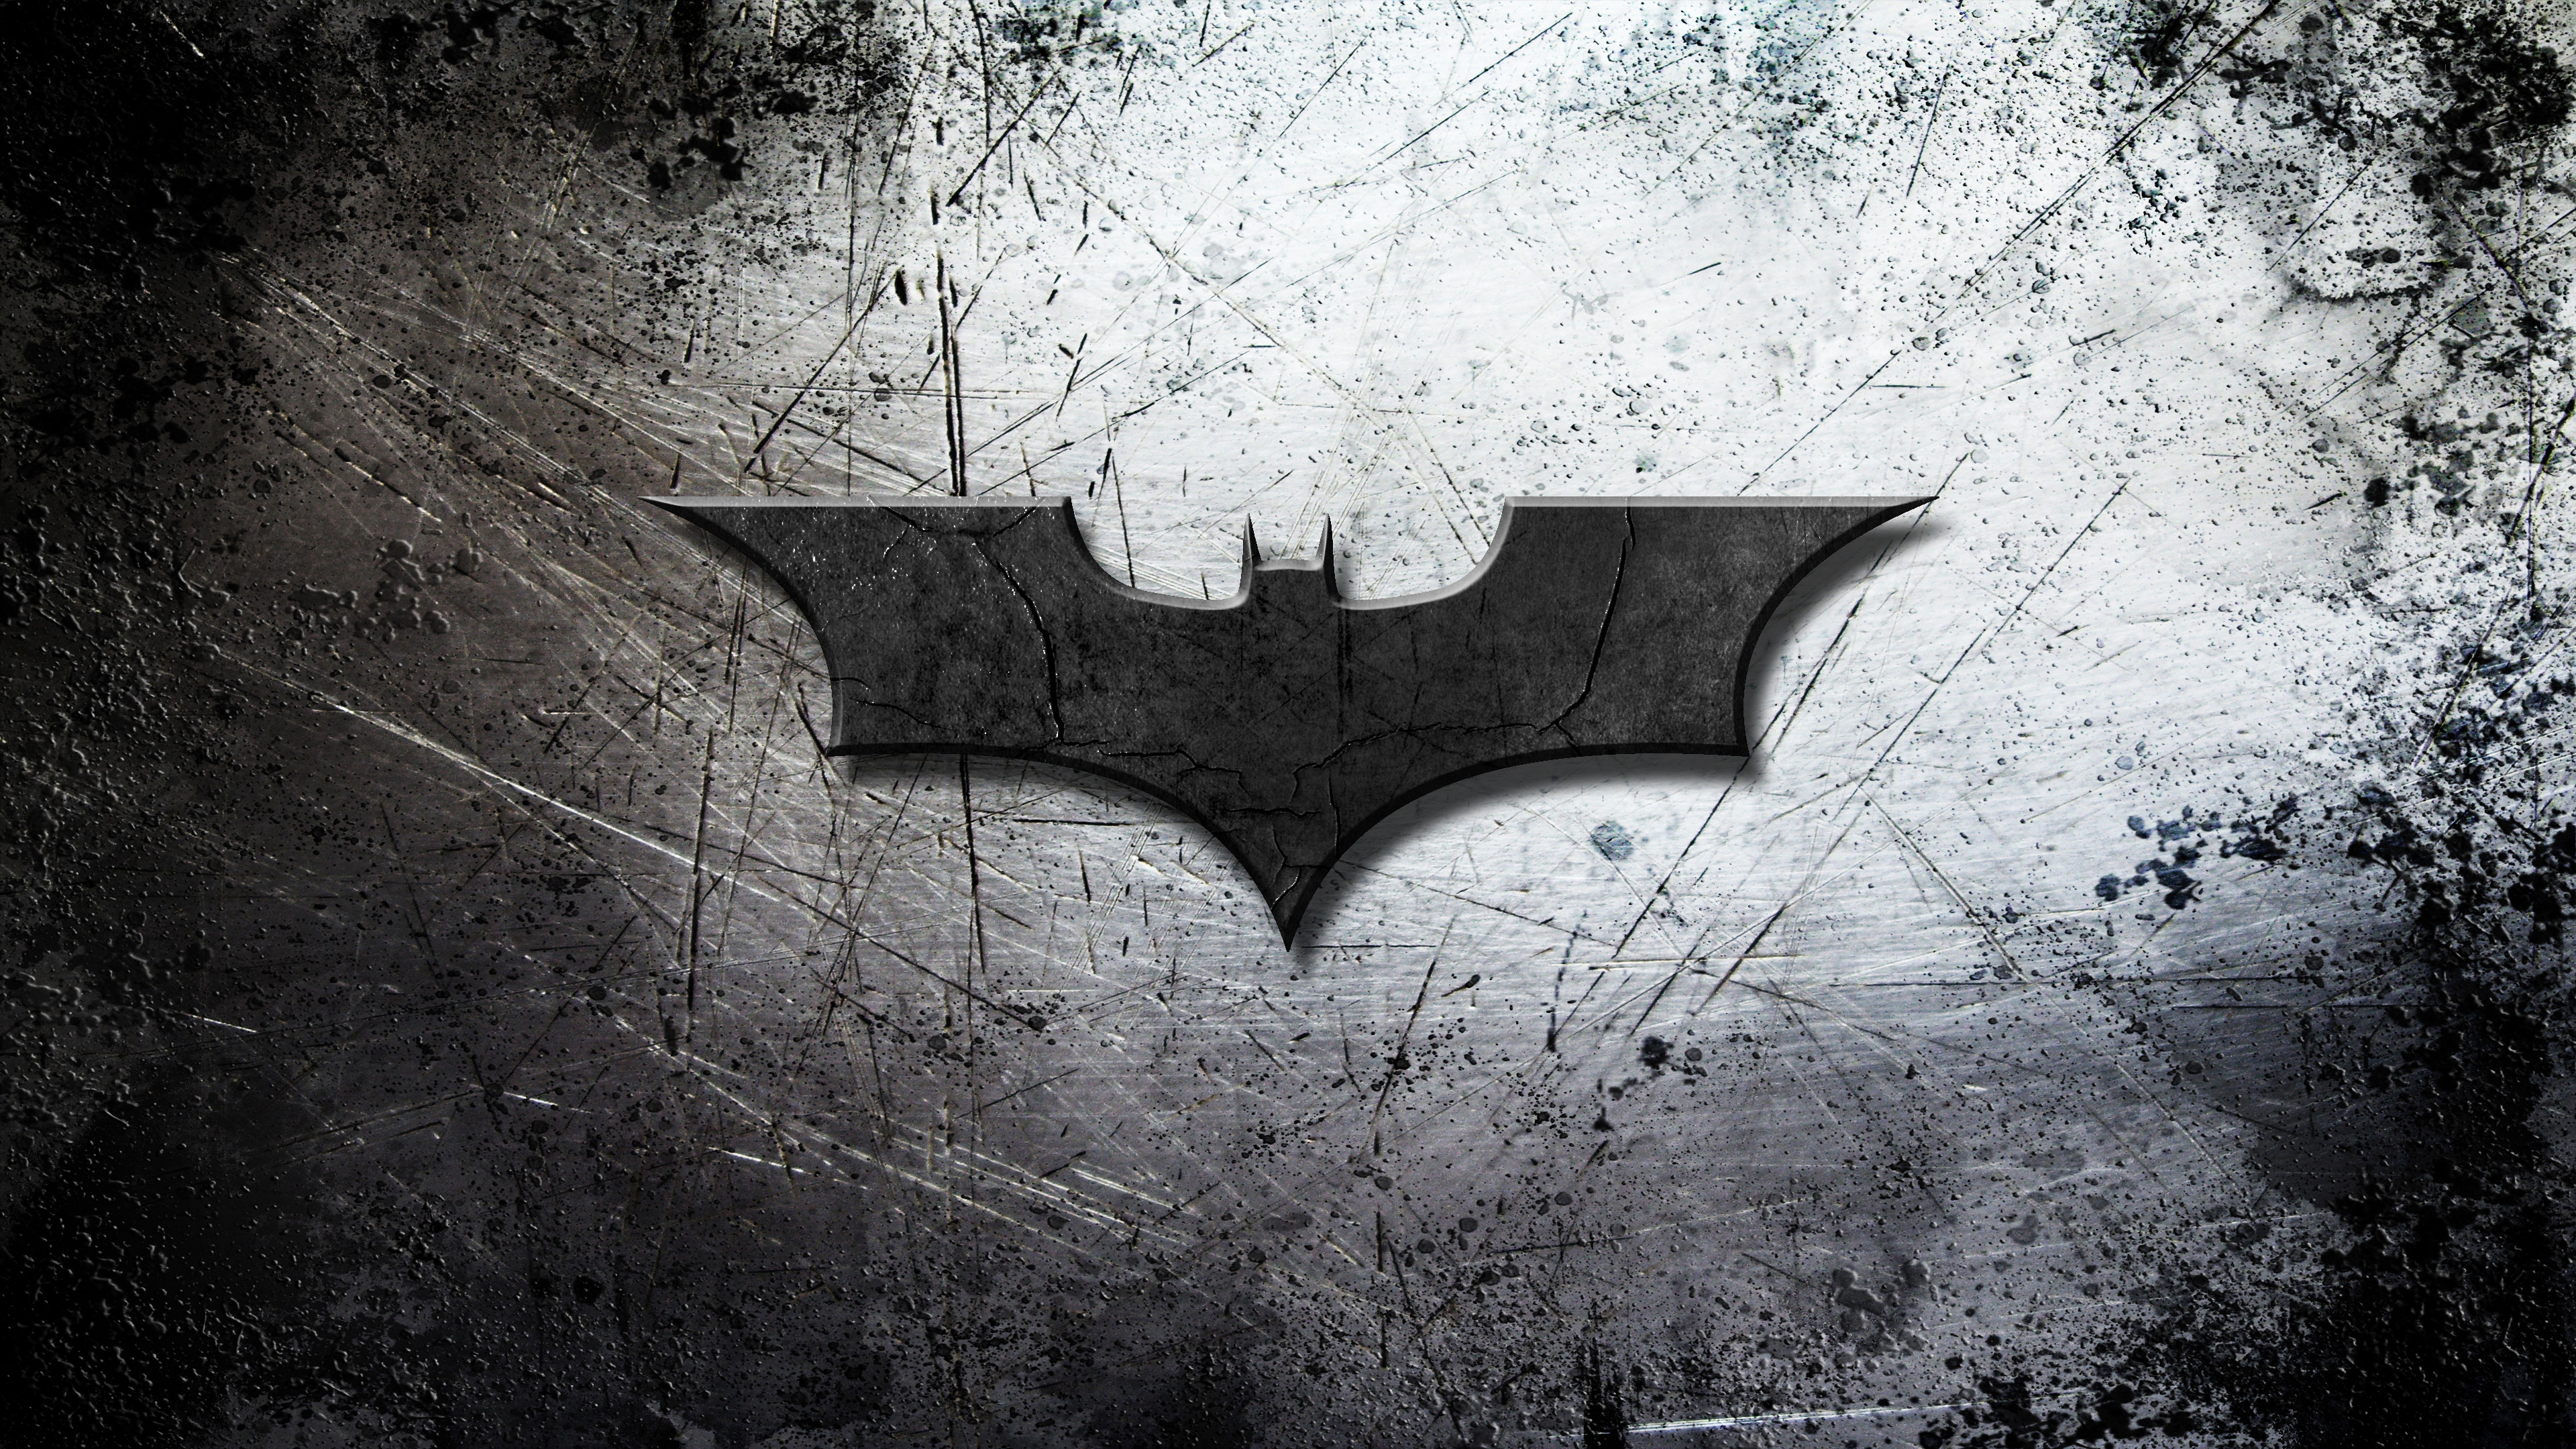 4k Batman Background Texture Wallpaper Wide Screen Wallpaper 1080p 3840x2160